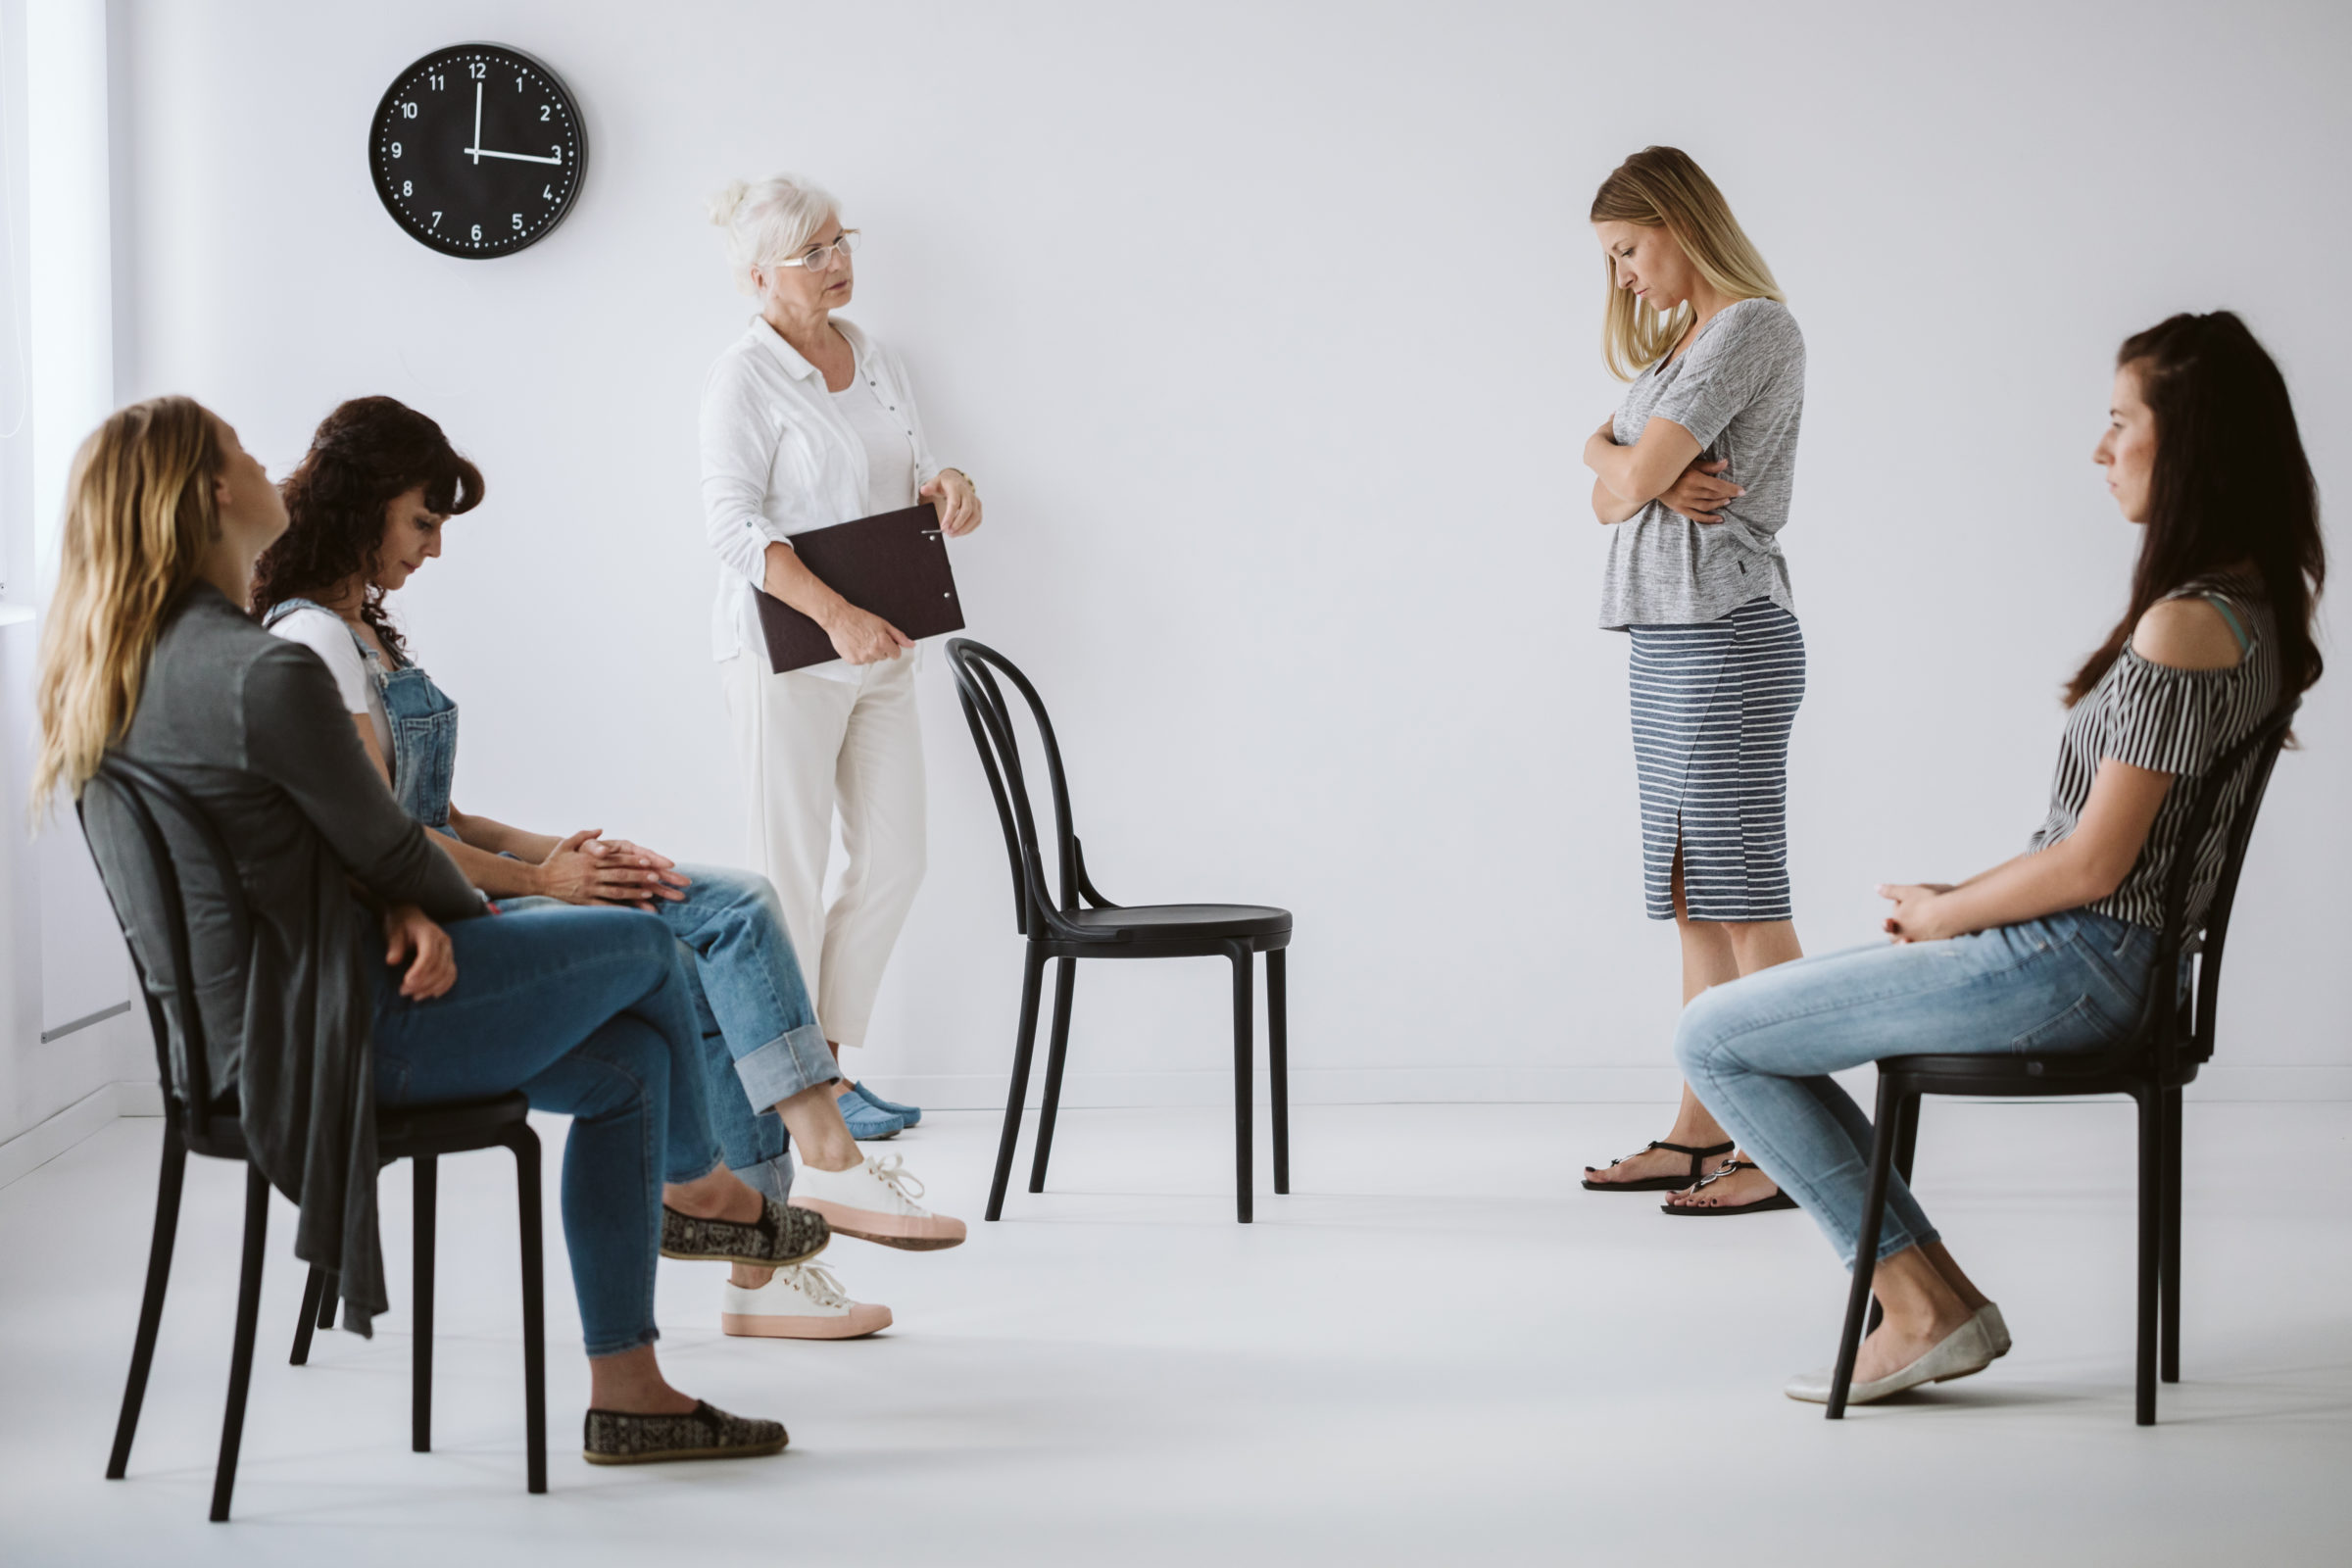 professional group psychotherapy for women with se F6QWJ9W